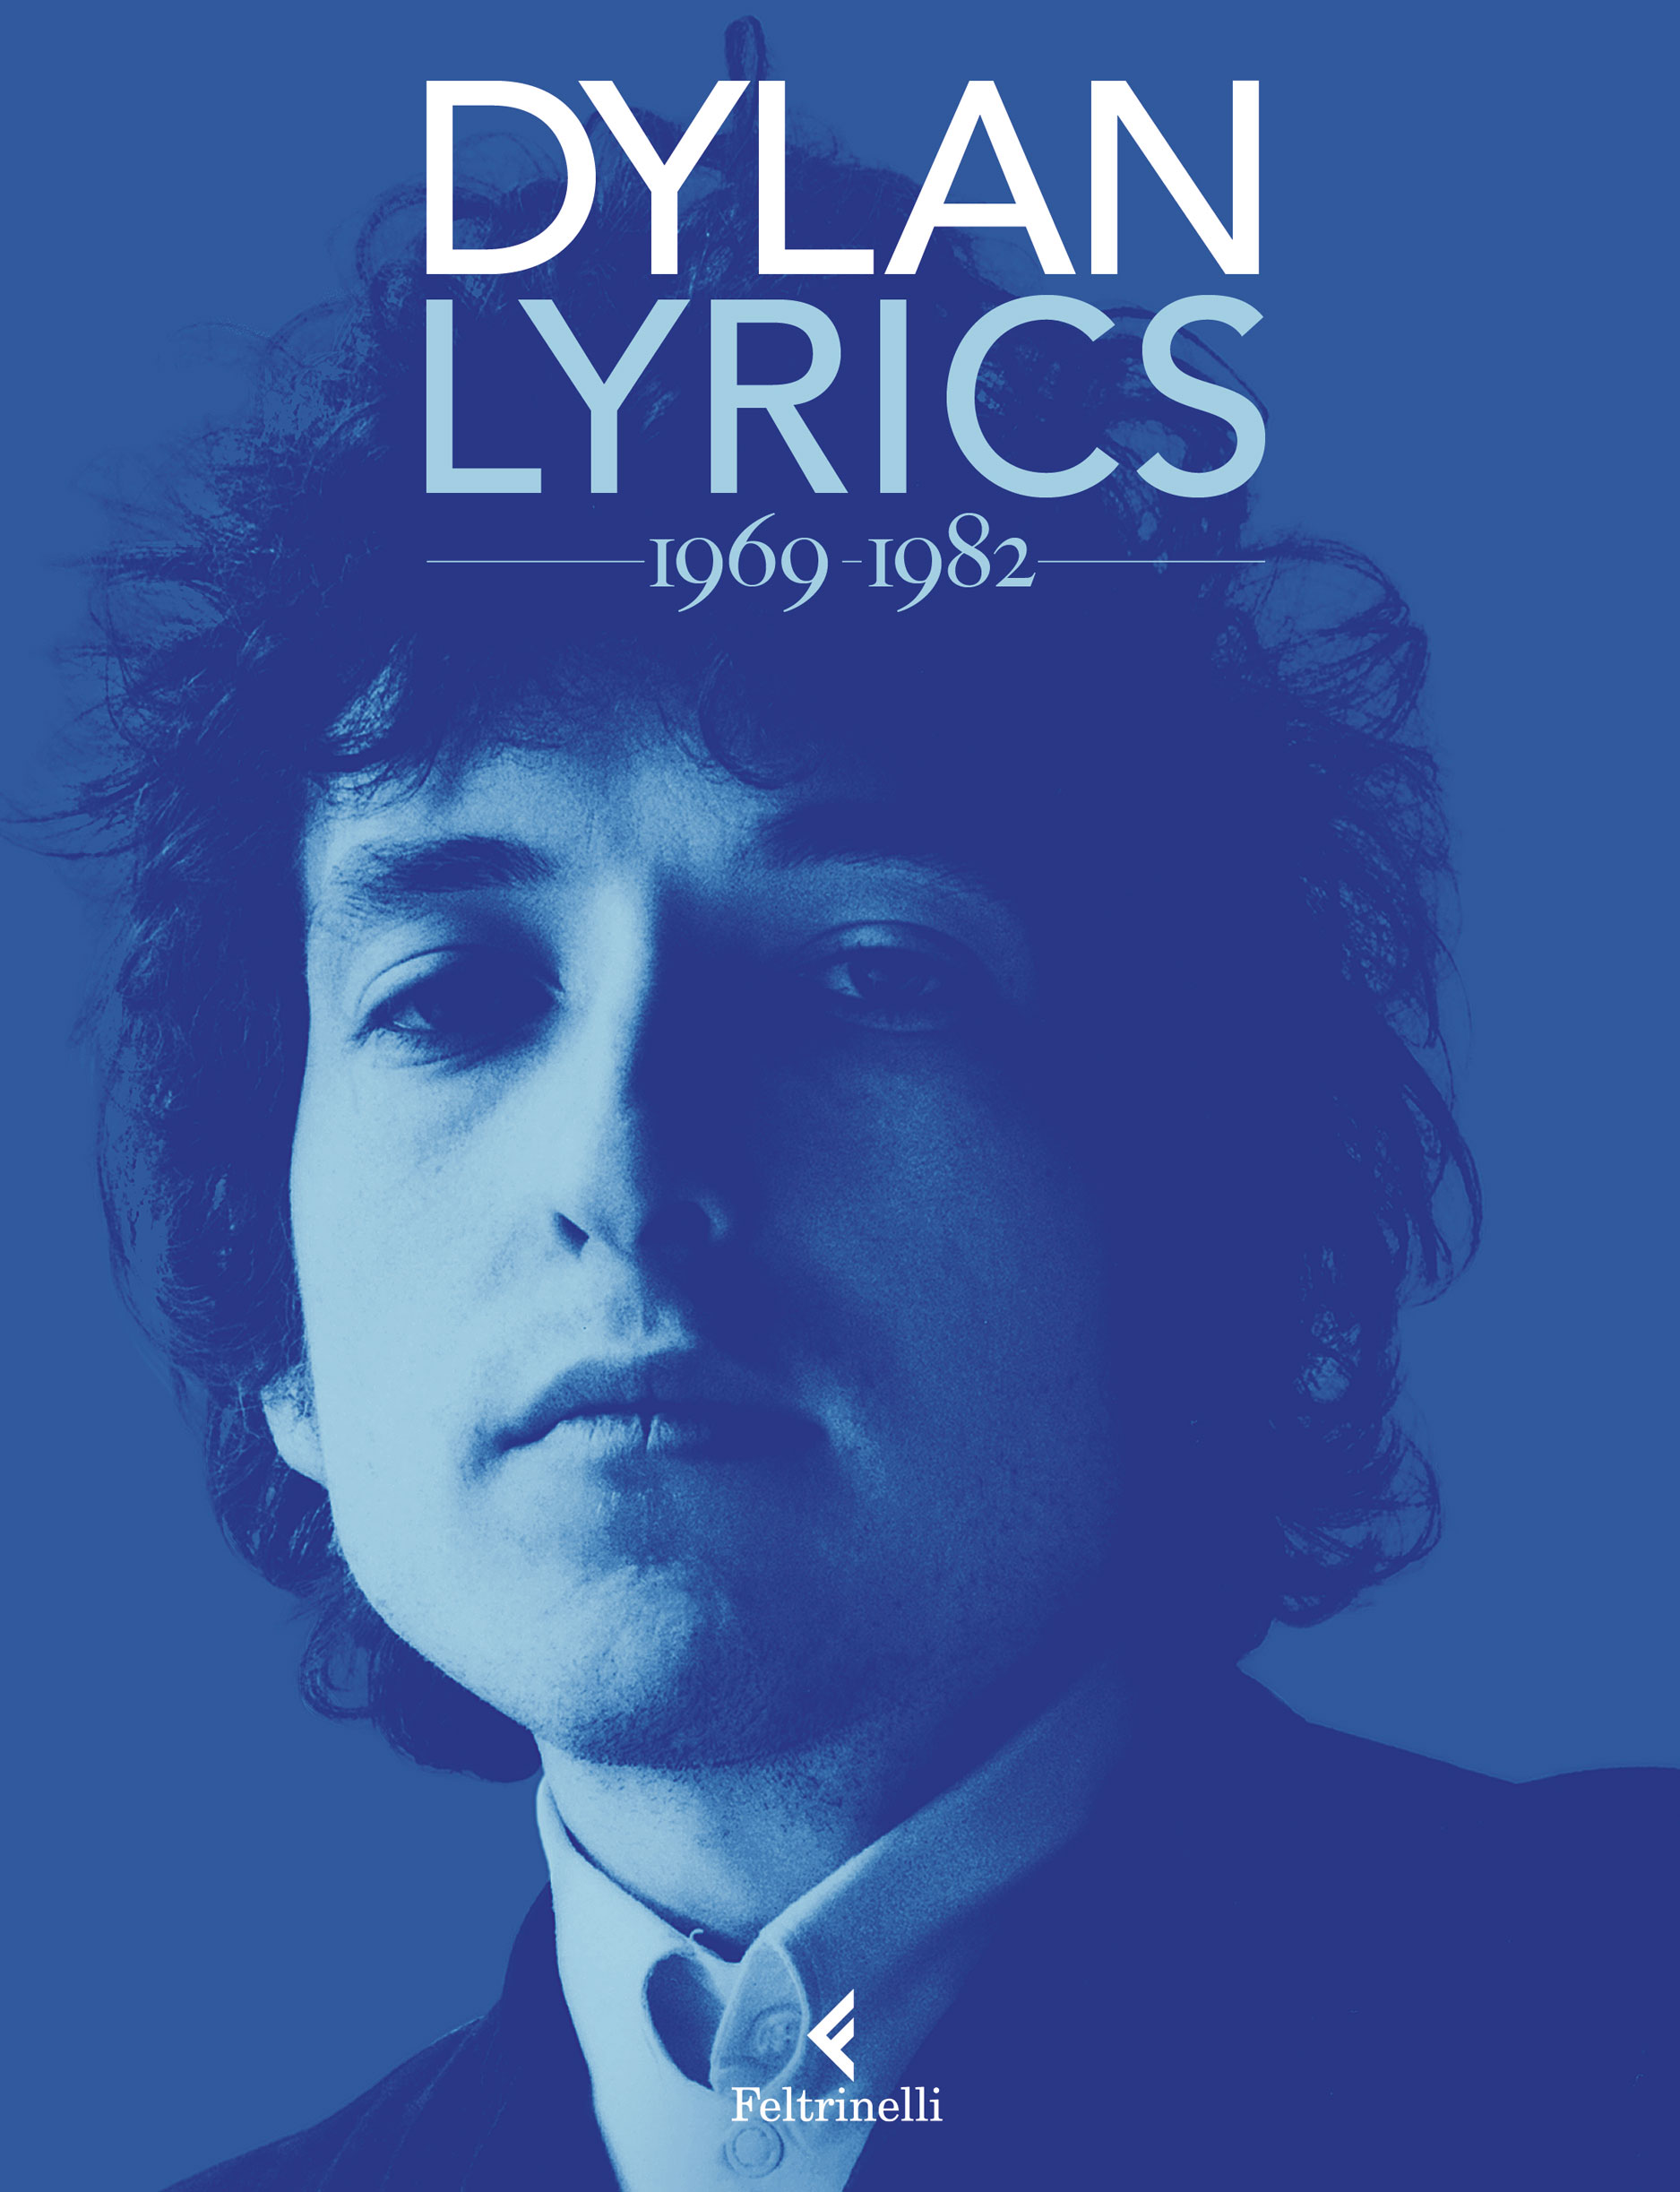 Lyrics / Dylan - 2. 1969-1982